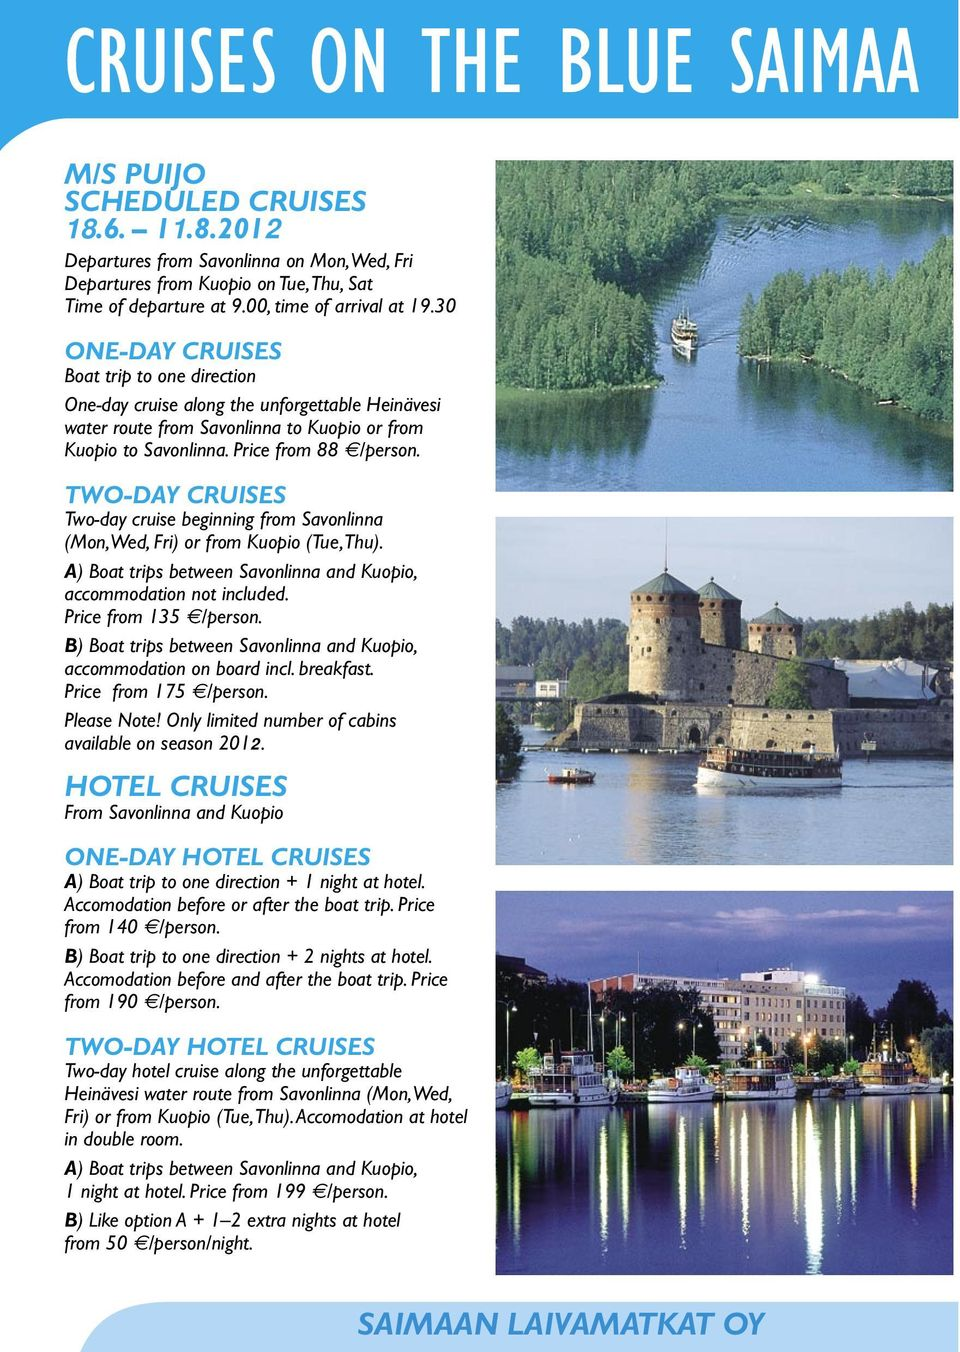 Price from 88 /person. TWO-DAY CRUISES Two-day cruise beginning from Savonlinna (Mon, Wed, Fri) or from Kuopio (Tue, Thu). A) Boat trips between Savonlinna and Kuopio, accommodation not included.